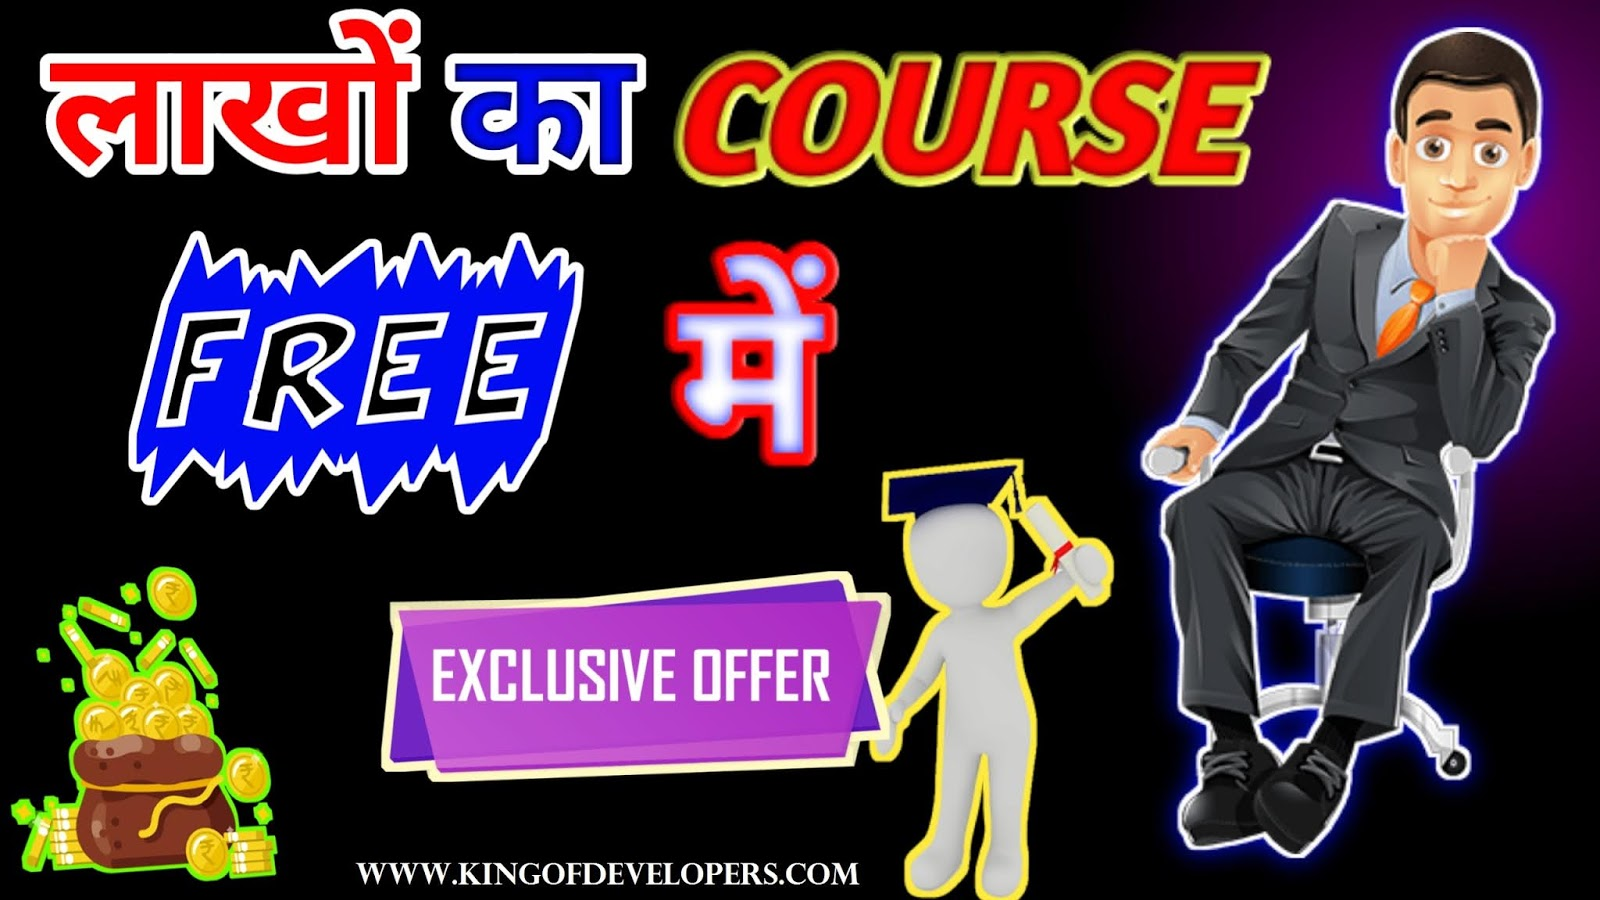 Free Courses 2020 - Paid Courses For Free (जल्दी लूट लो) Limited Time